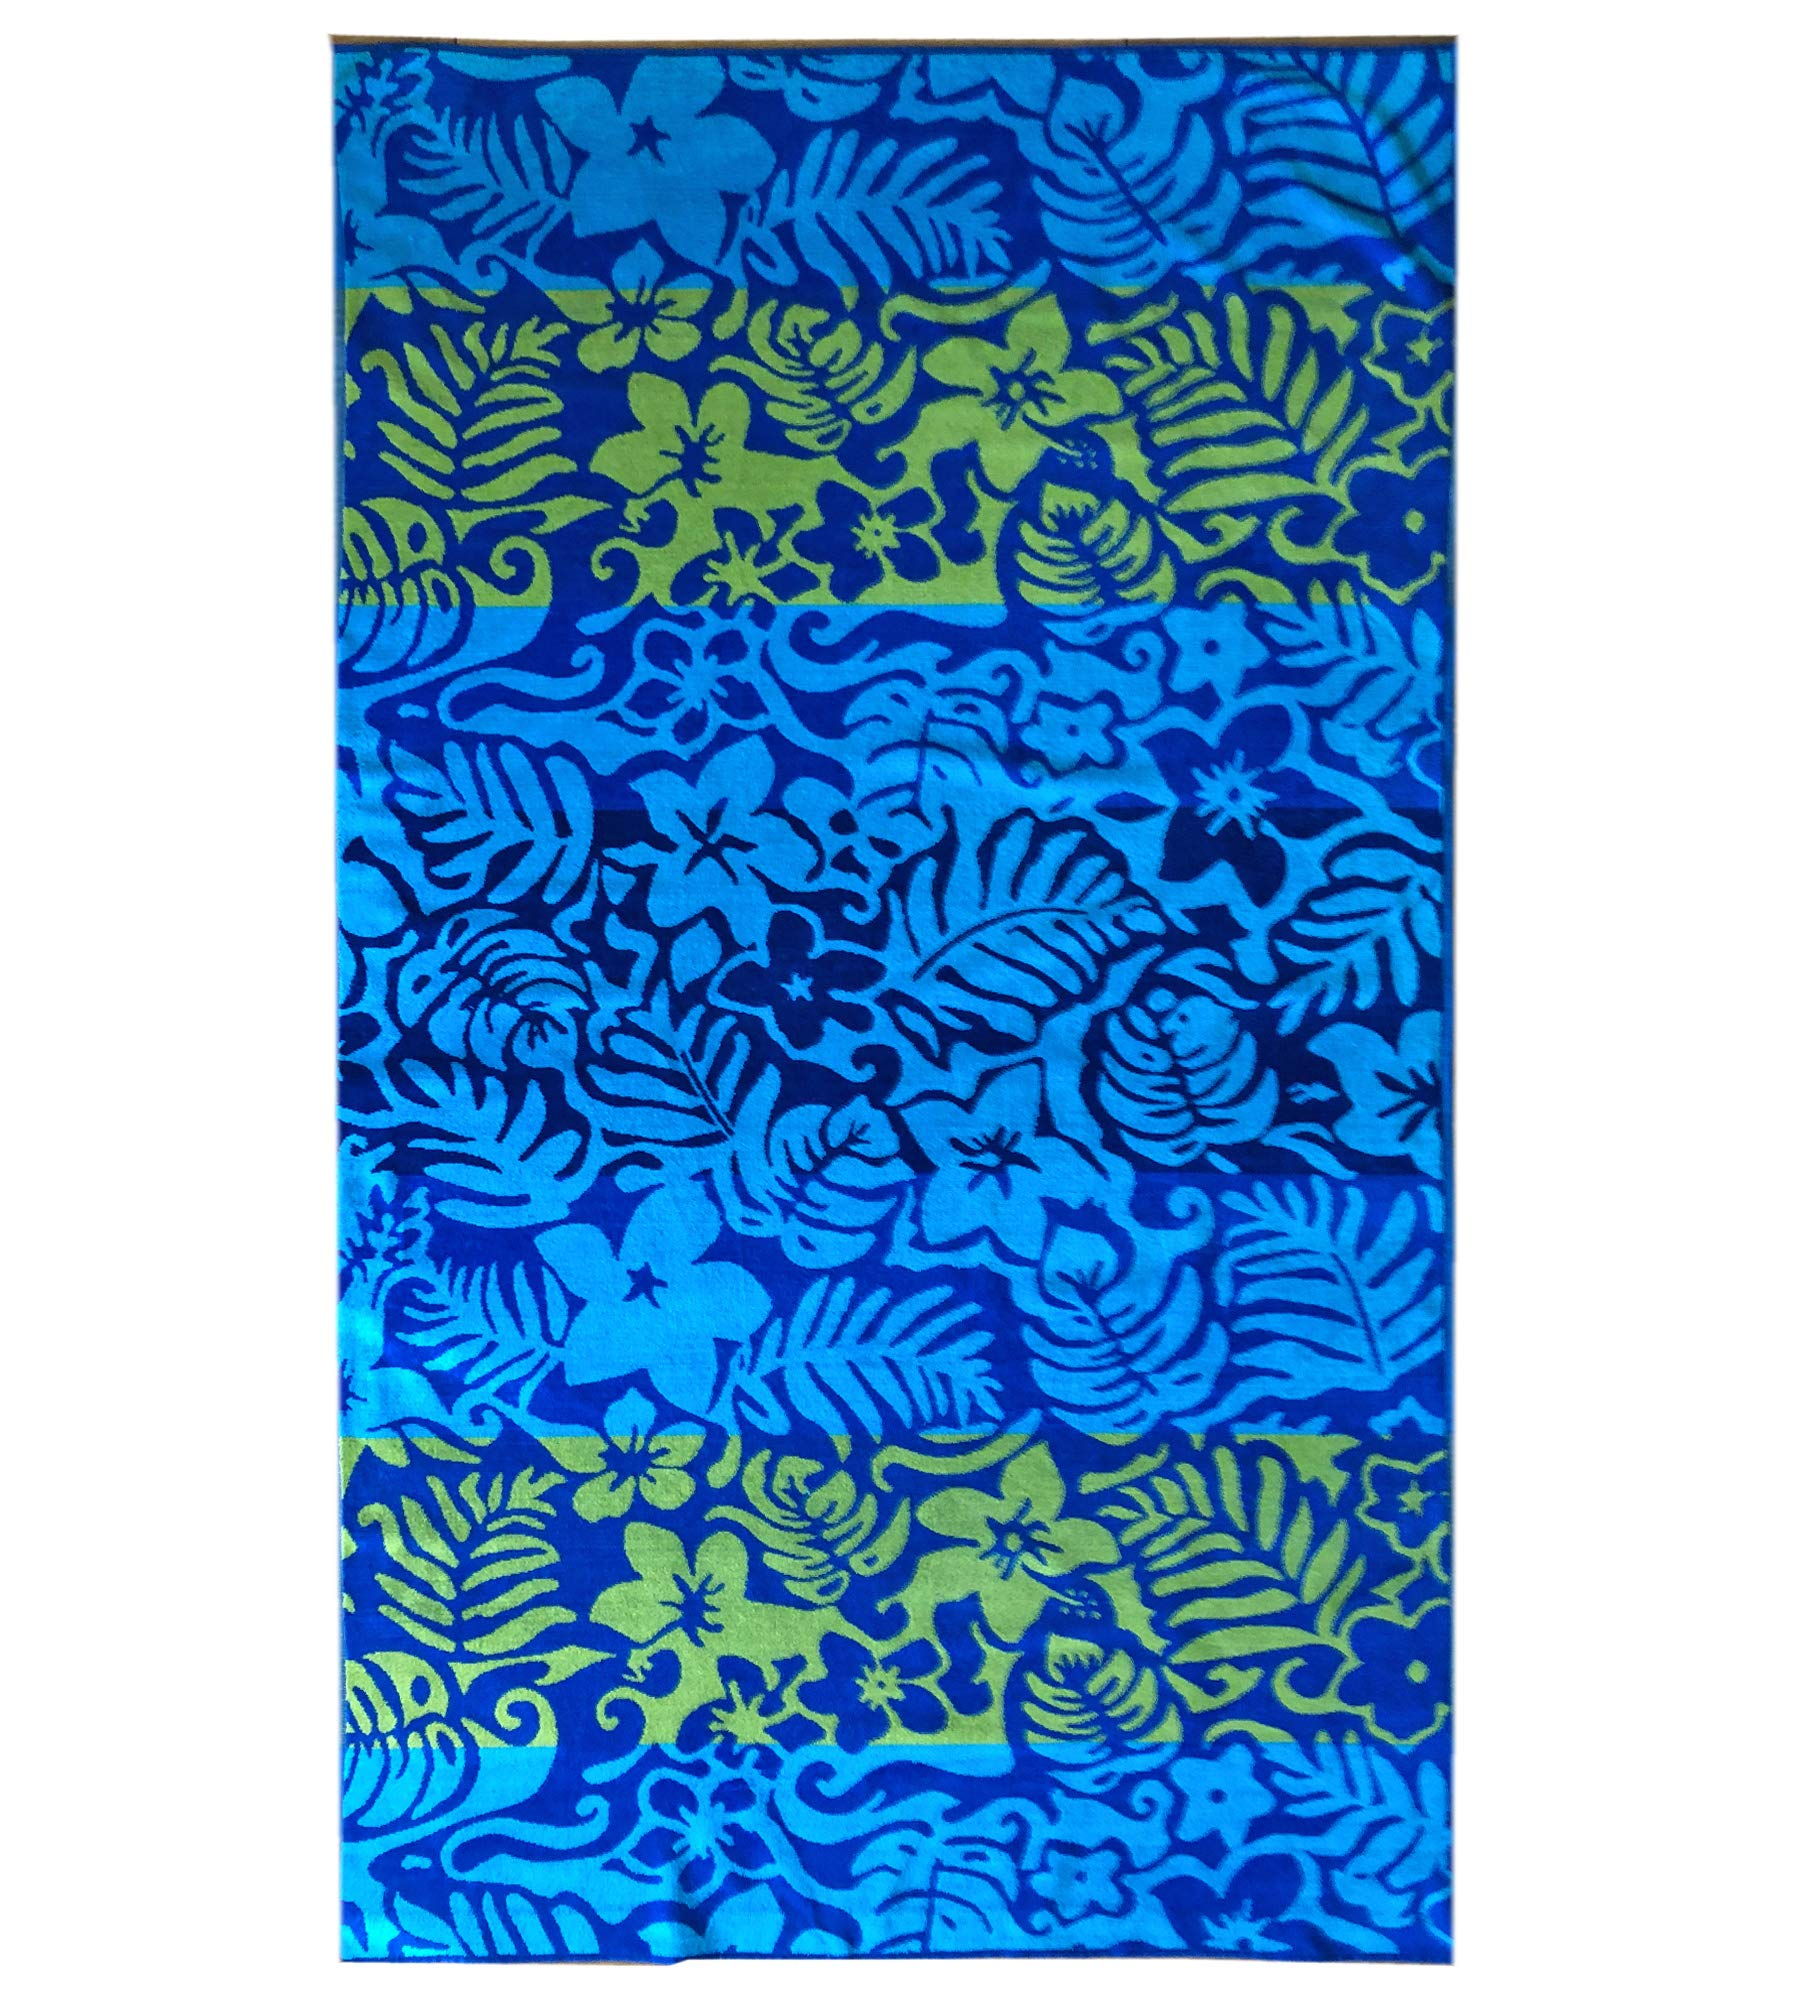 Espalma Over Sized Luxury Beach Towel, Large Size 70 Inch x 40 Inch Soft Velour and Reversible Absorbent Cotton Terry, Thick and Plush Jacquard Beach Towel, Blue Luau Floral